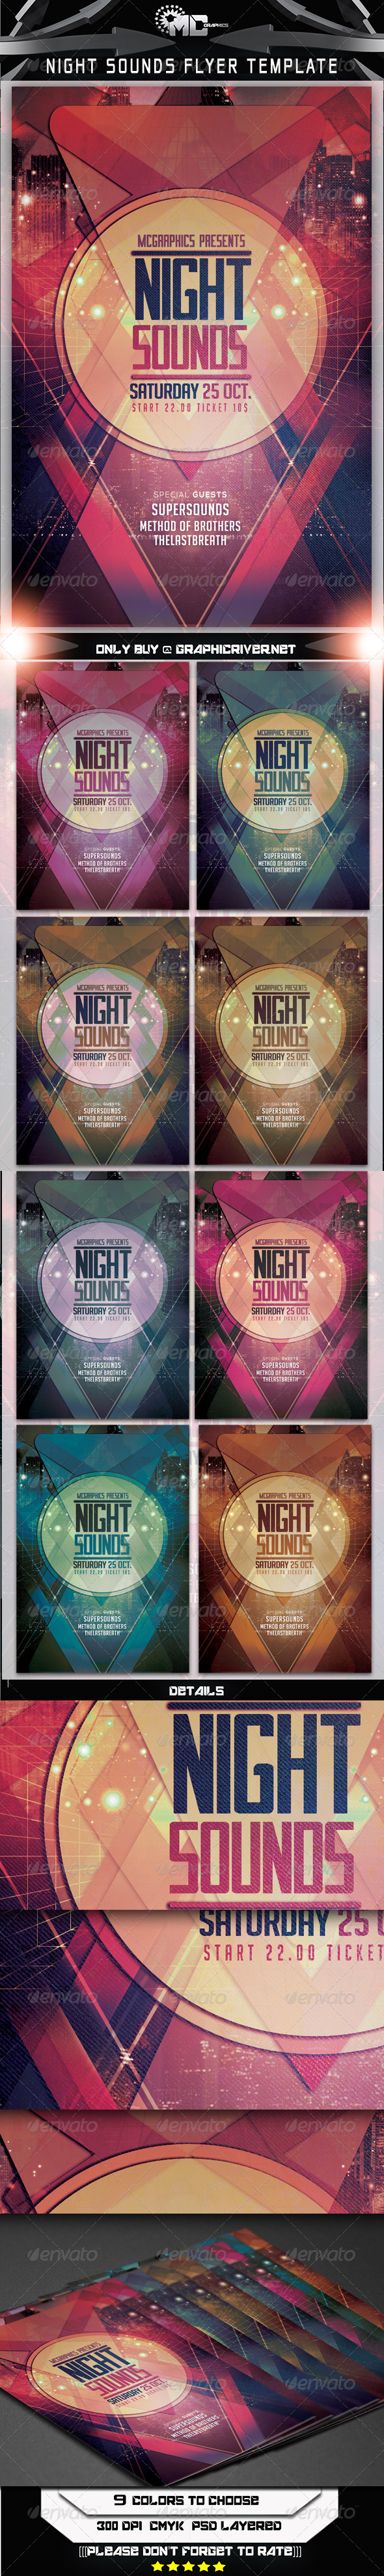 GraphicRiver Night Sounds Flyer Template 8170103